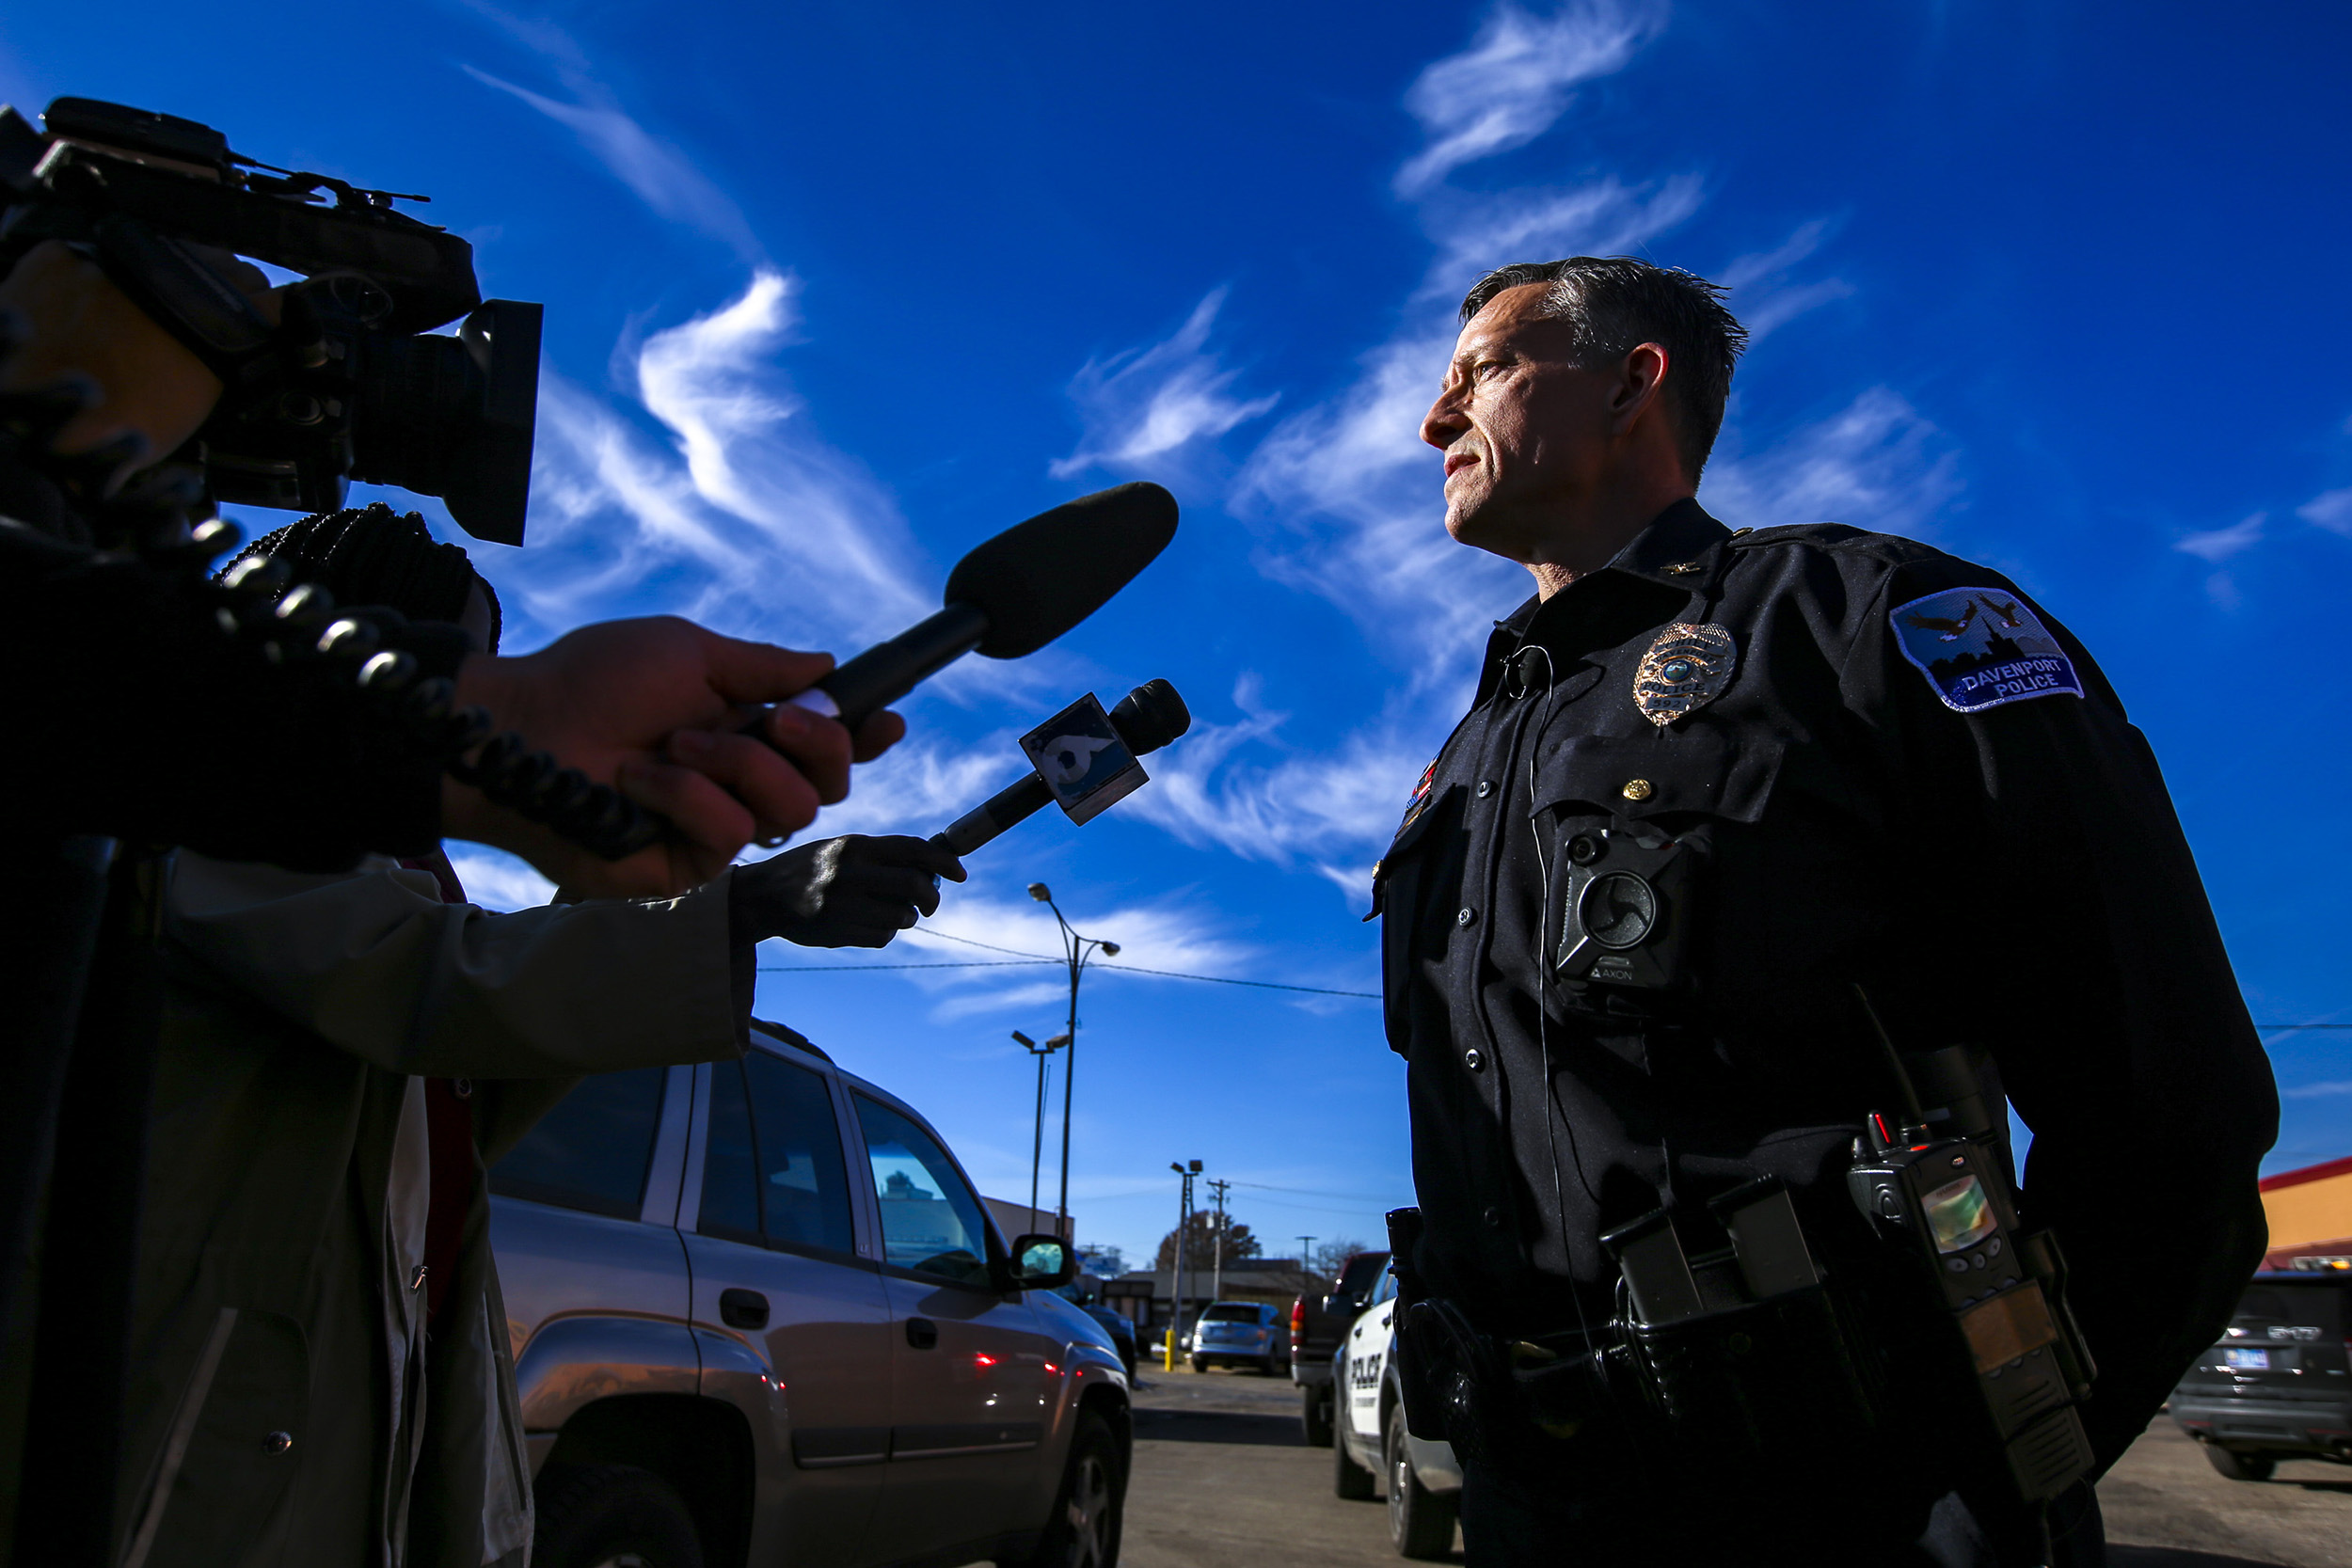 Davenport Chief of Police Paul Sikorski takes questions from members of the media during a brief news conference at the scene of a shooting injuring one man at the Dollar General in Davenport, Tuesday, Dec. 18, 2018.